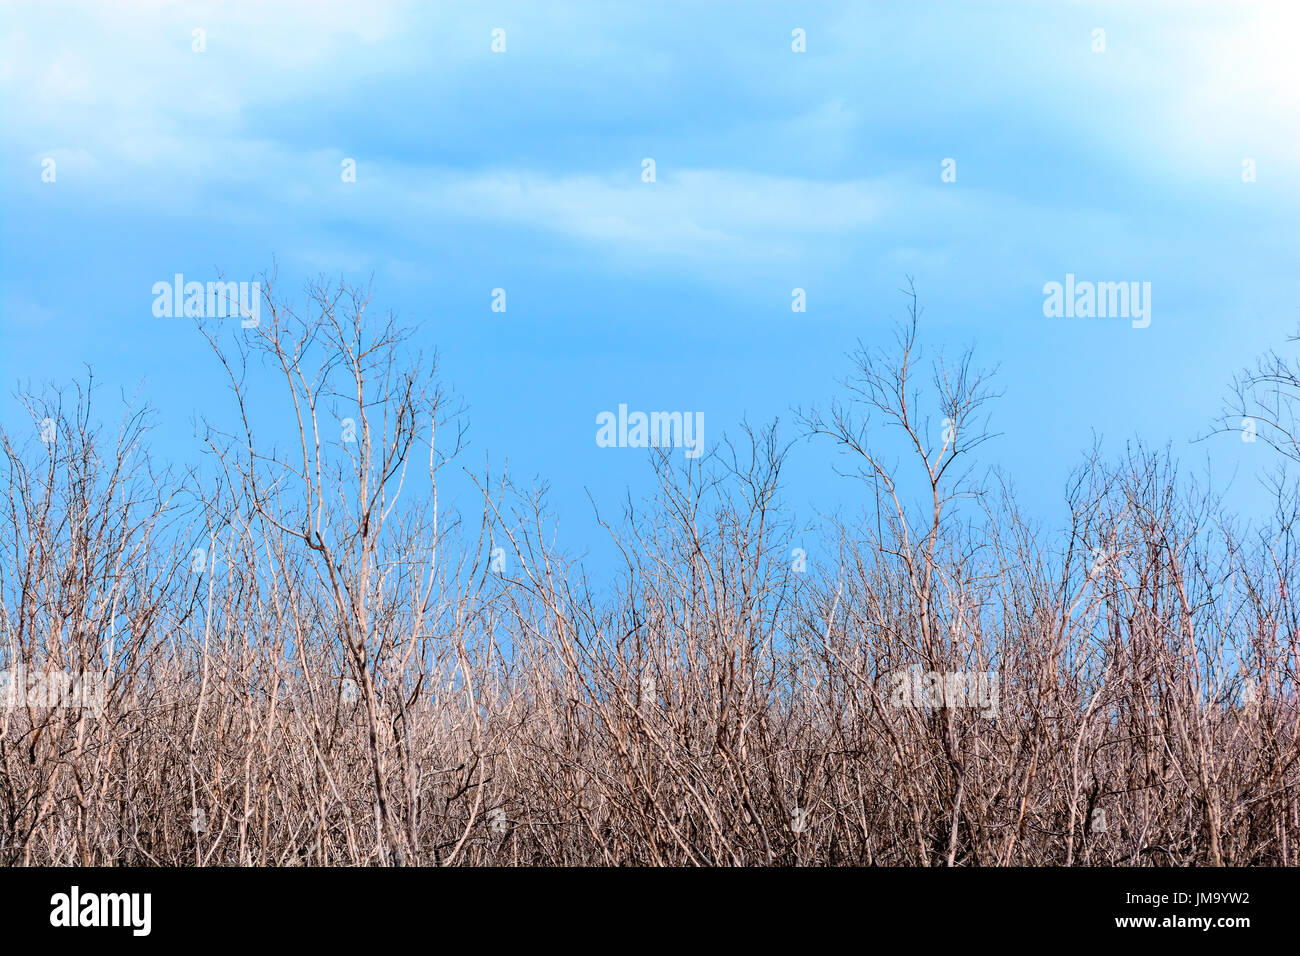 Dead trees with blue sky and clound - Stock Image